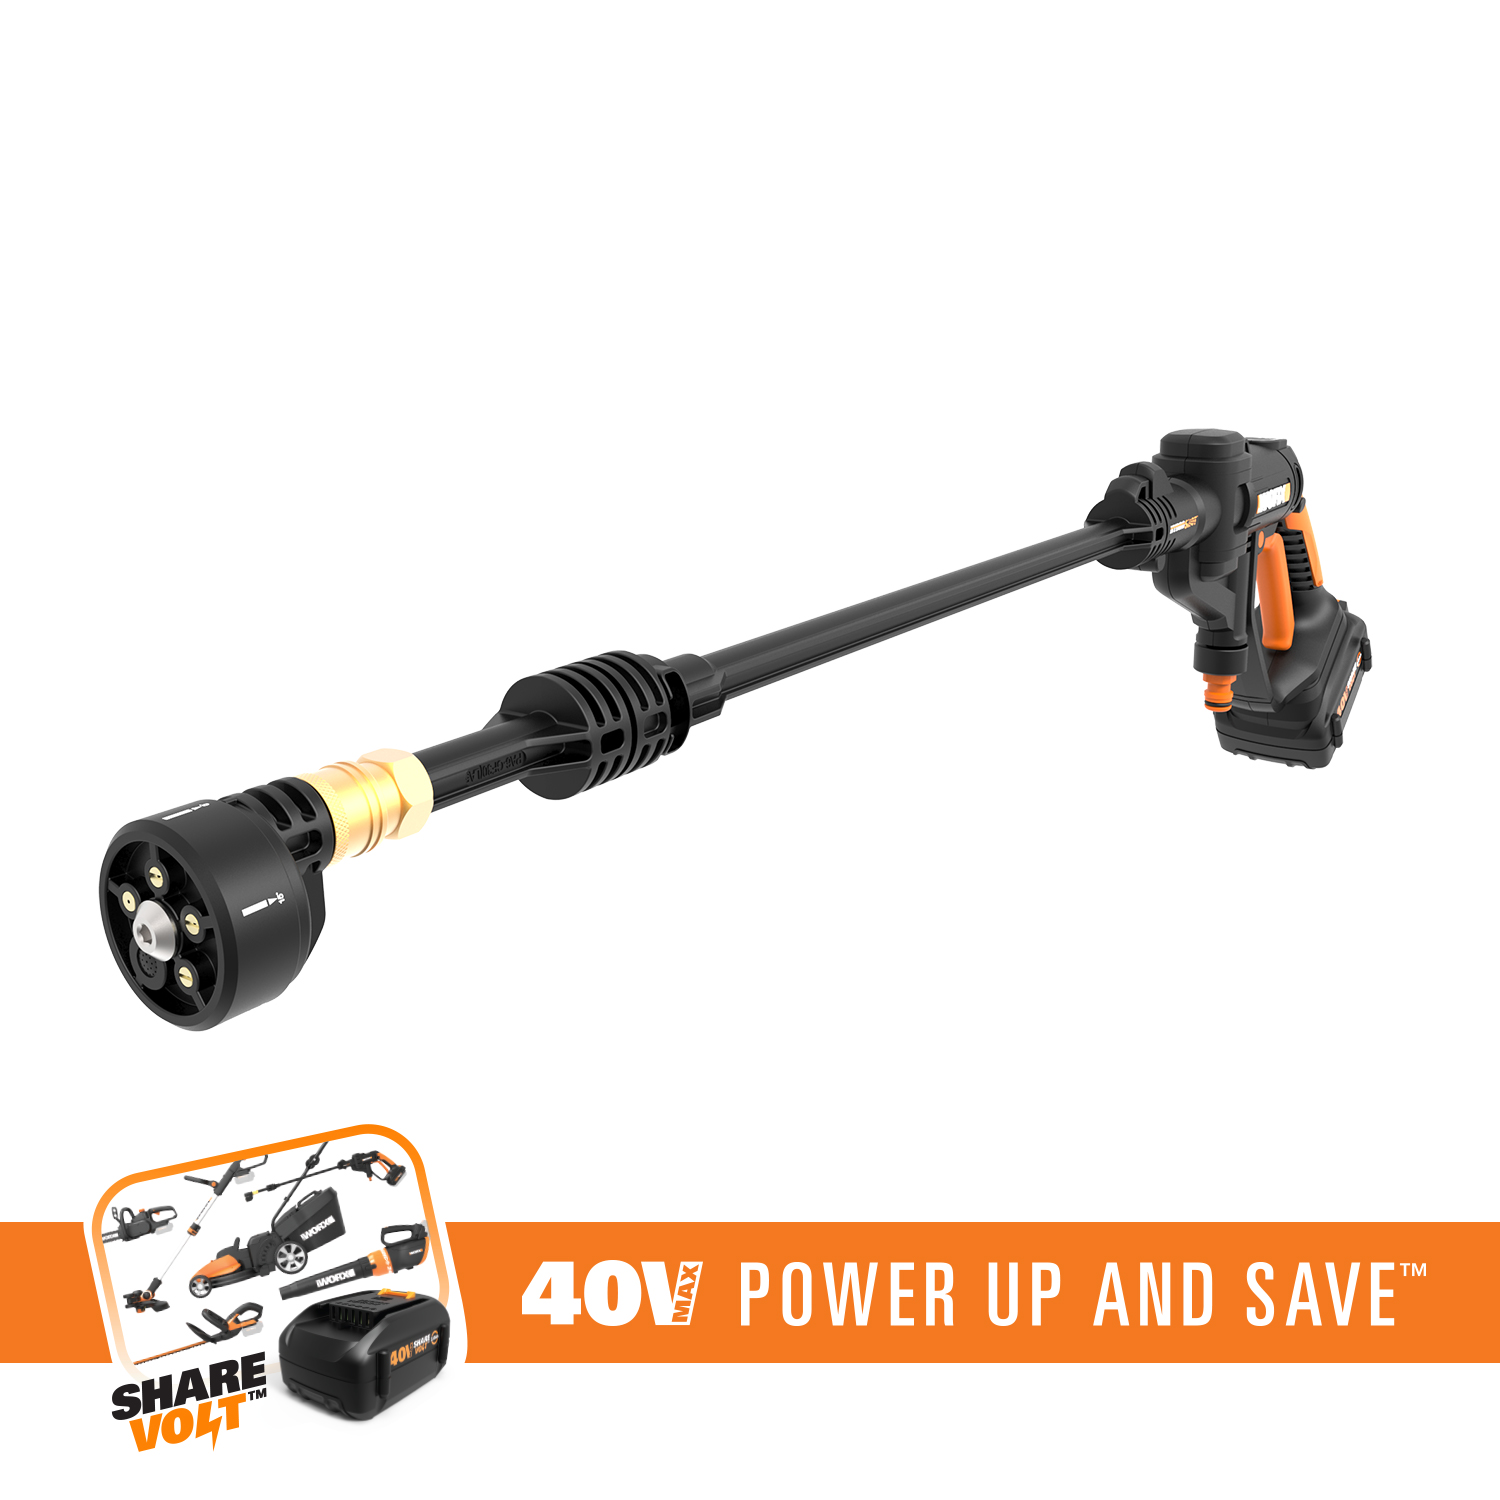 WORX WG640 40V Hydroshot Portable Power Cleaner With 5-in-1 Pressure Nozzle and Dual Mode Operation